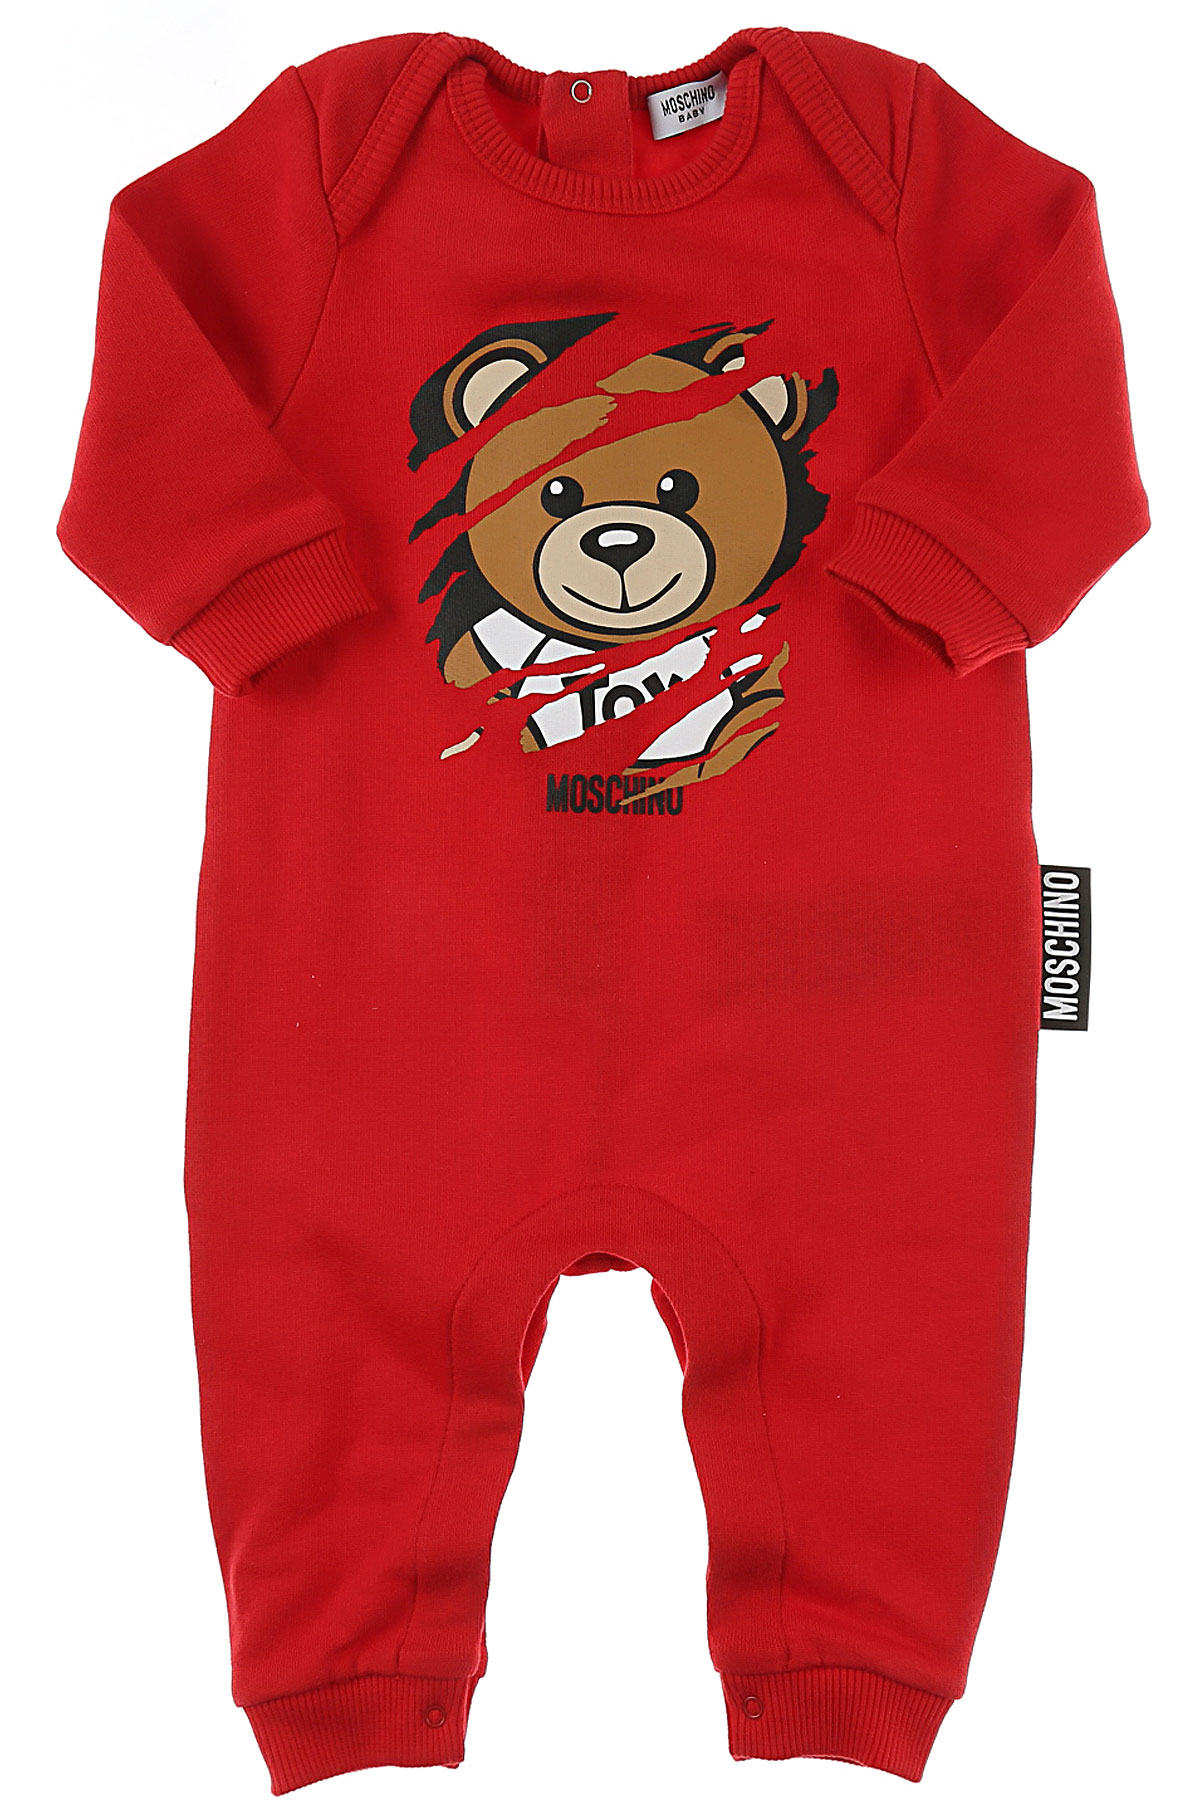 Image of Moschino Baby Bodysuits & Onesies for Boys, Red, Cotton, 2017, 9M